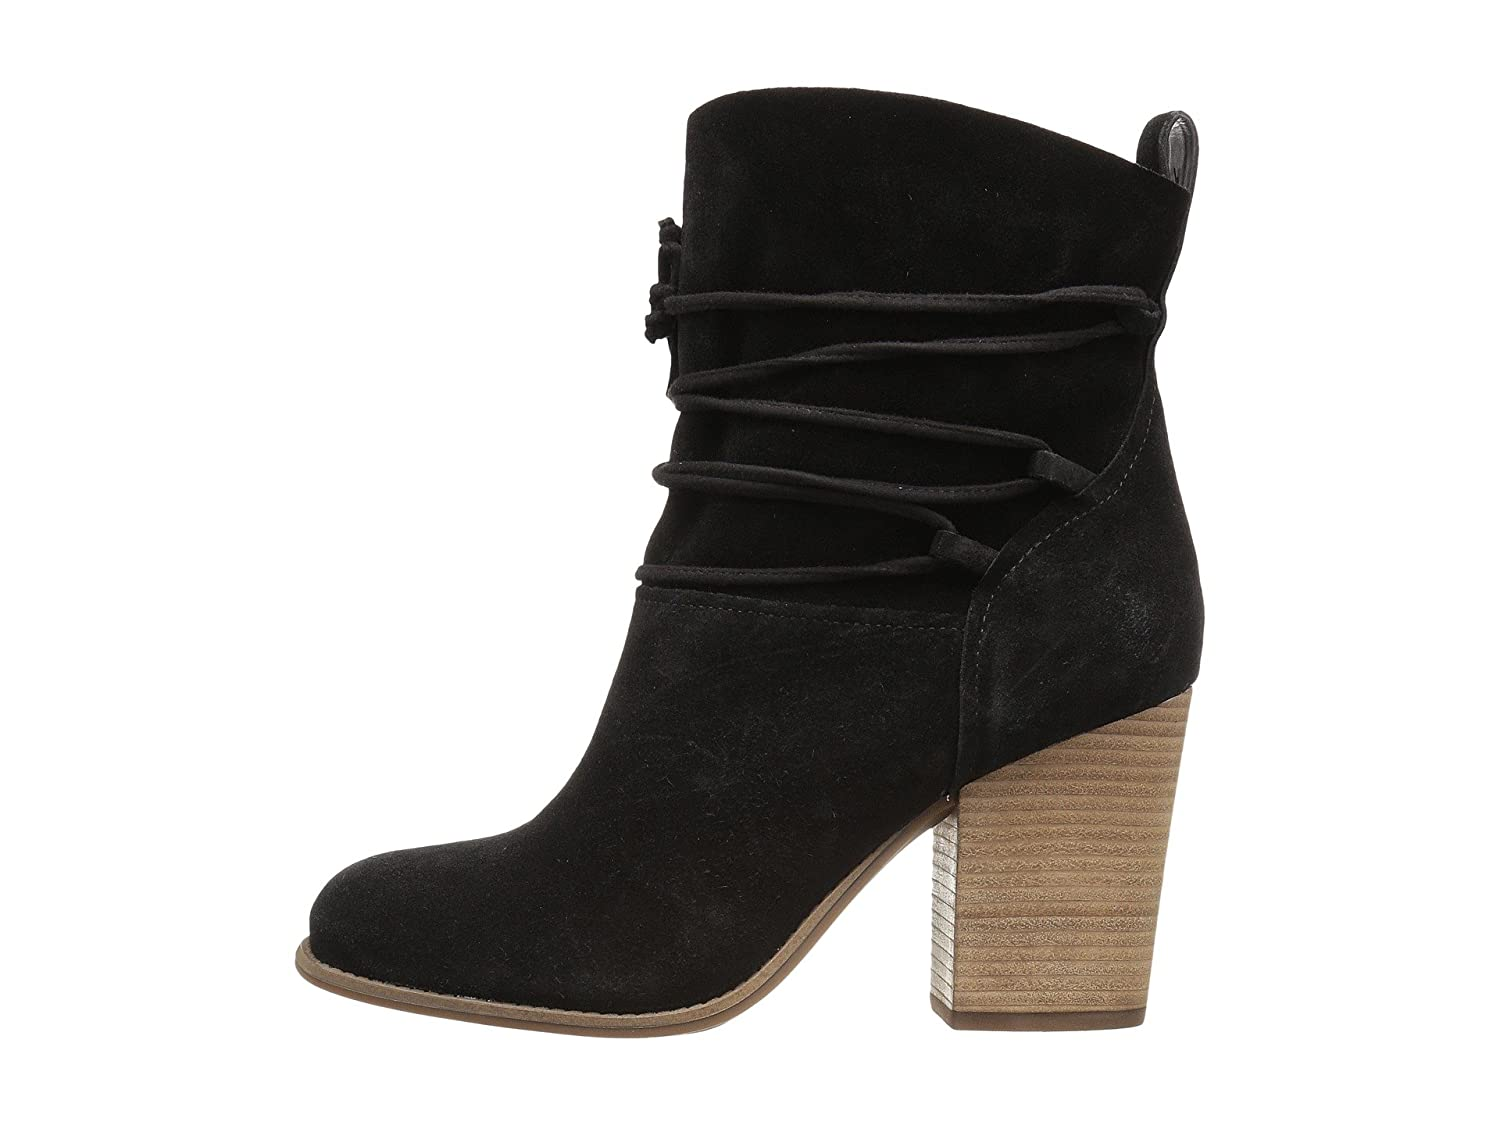 Jessica Simpson Womens Satu Closed Toe Ankle Fashion Boots B01IPXSRB2 7 B(M) US|Black Luxe Kid Suede